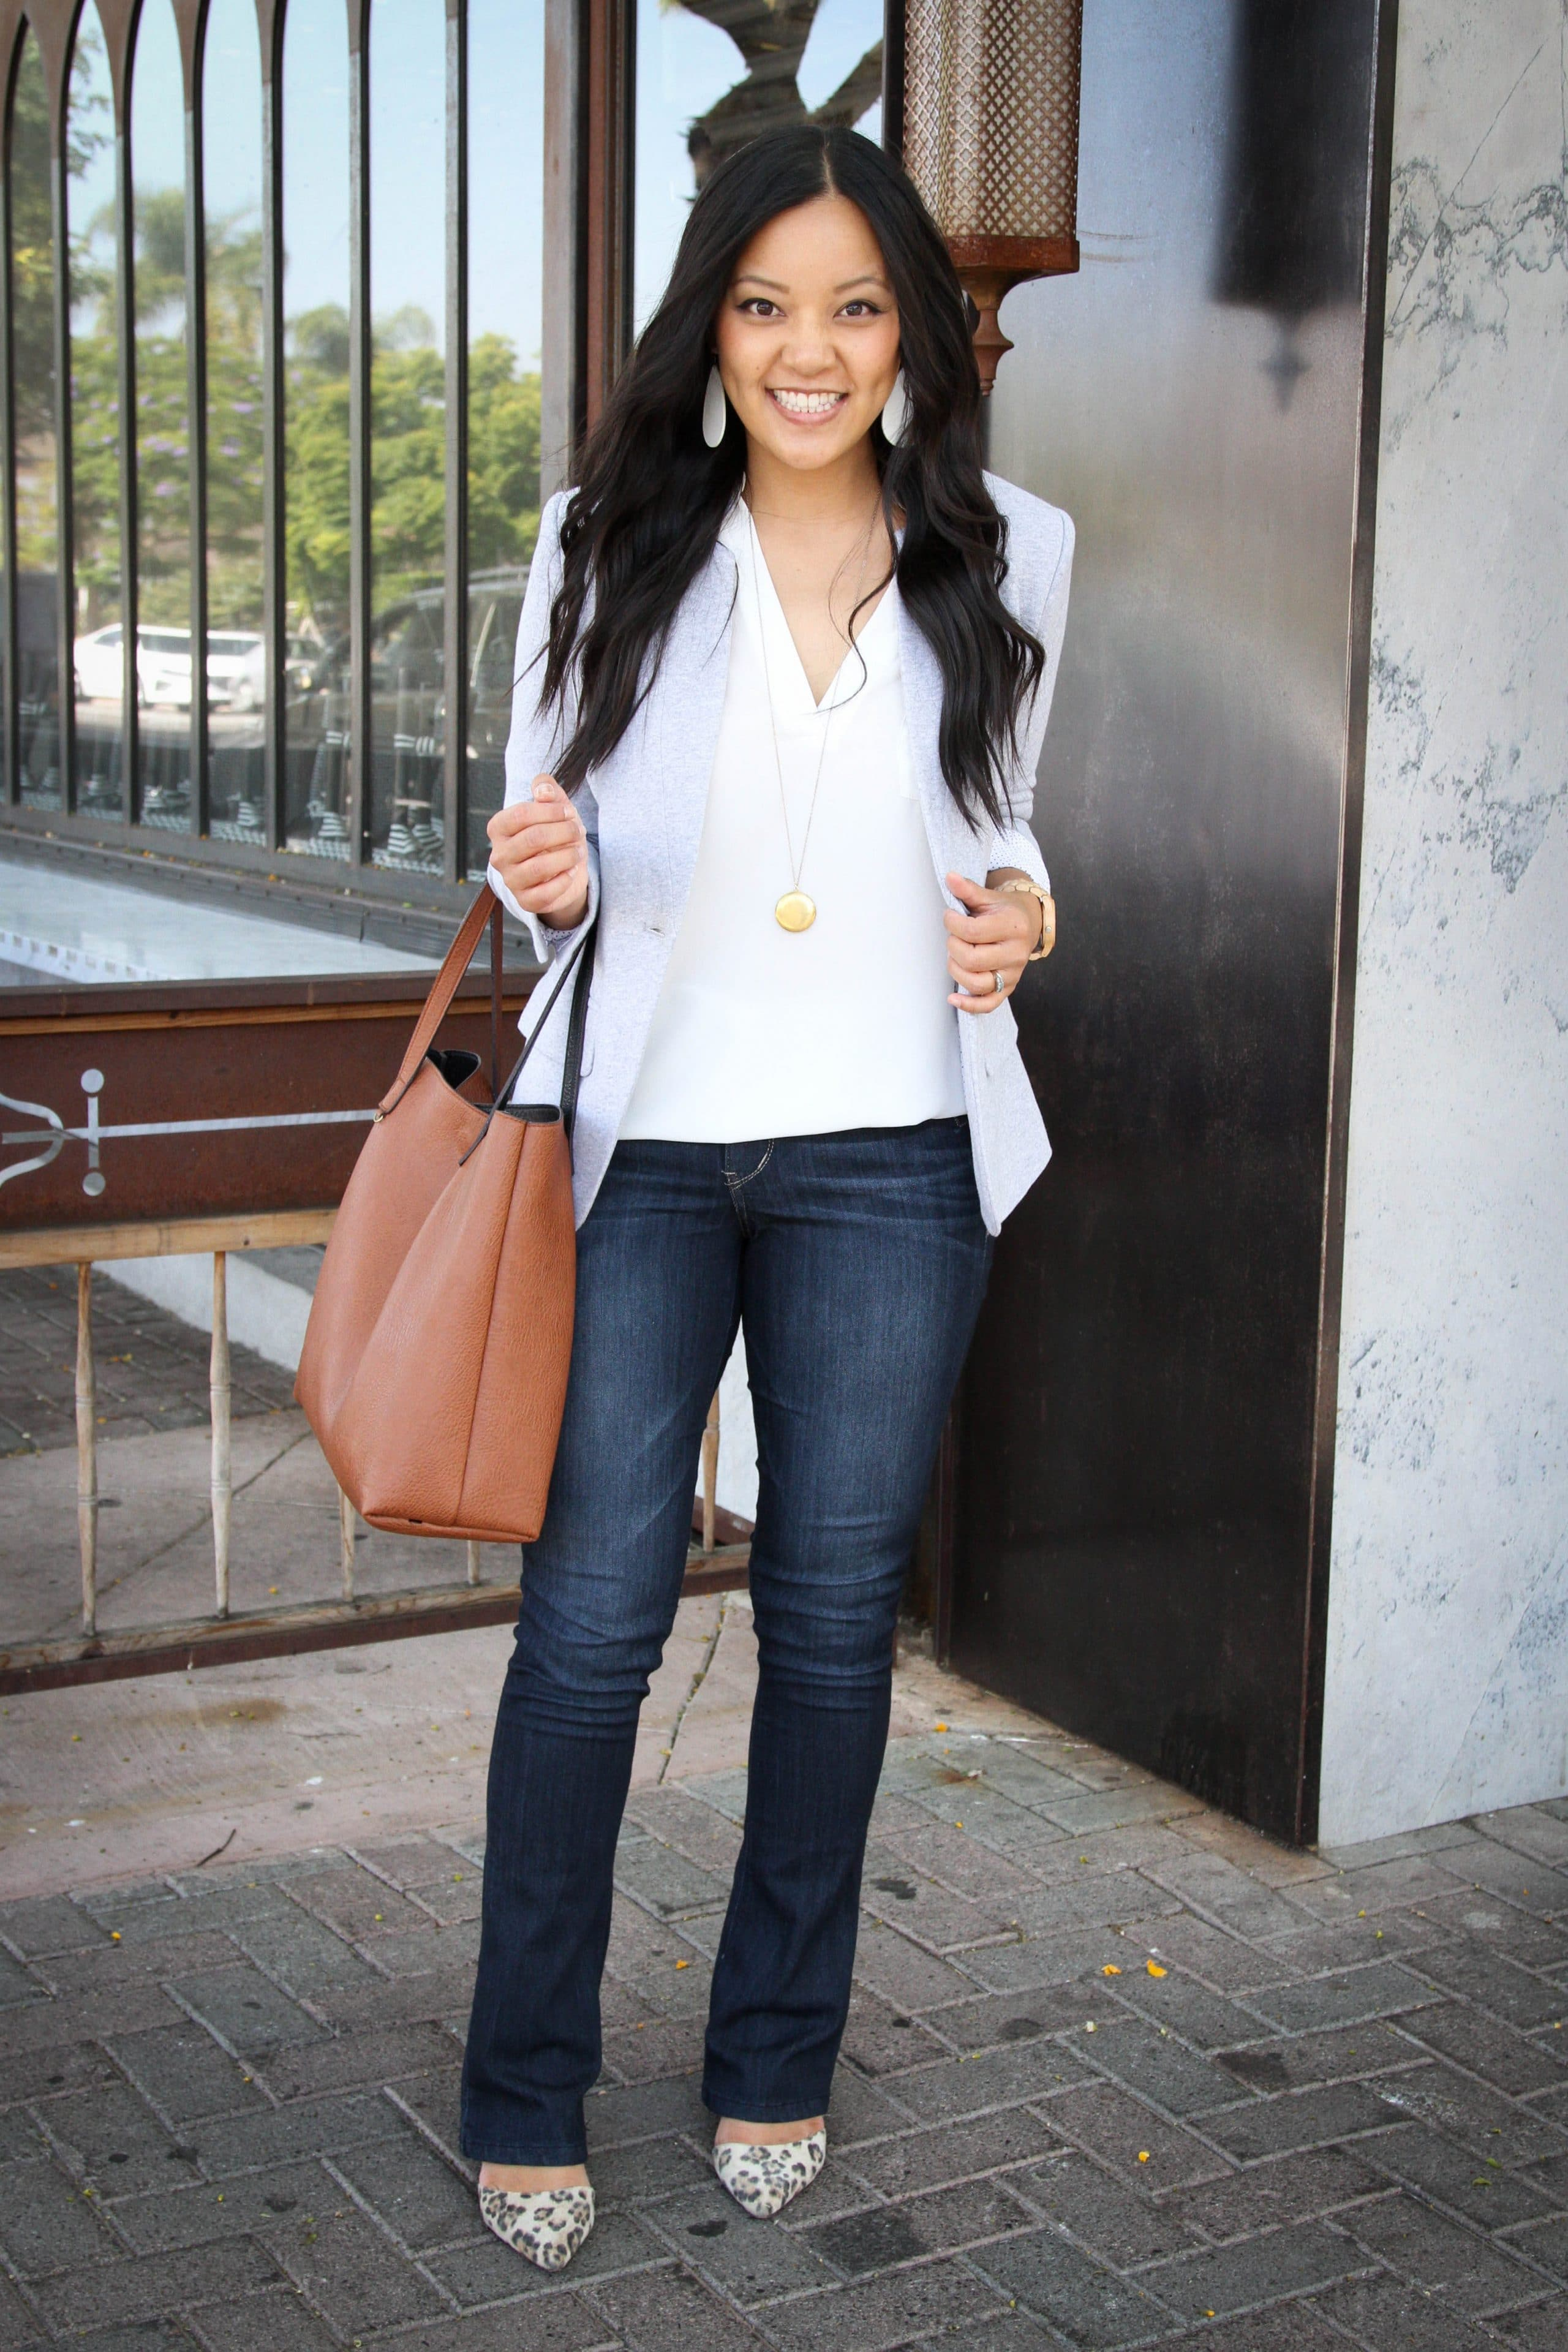 Elevated Casual Outfit: white top + gray blazer + bootcut jeans + white earrings + pendant necklace + tan tote + leopard flats